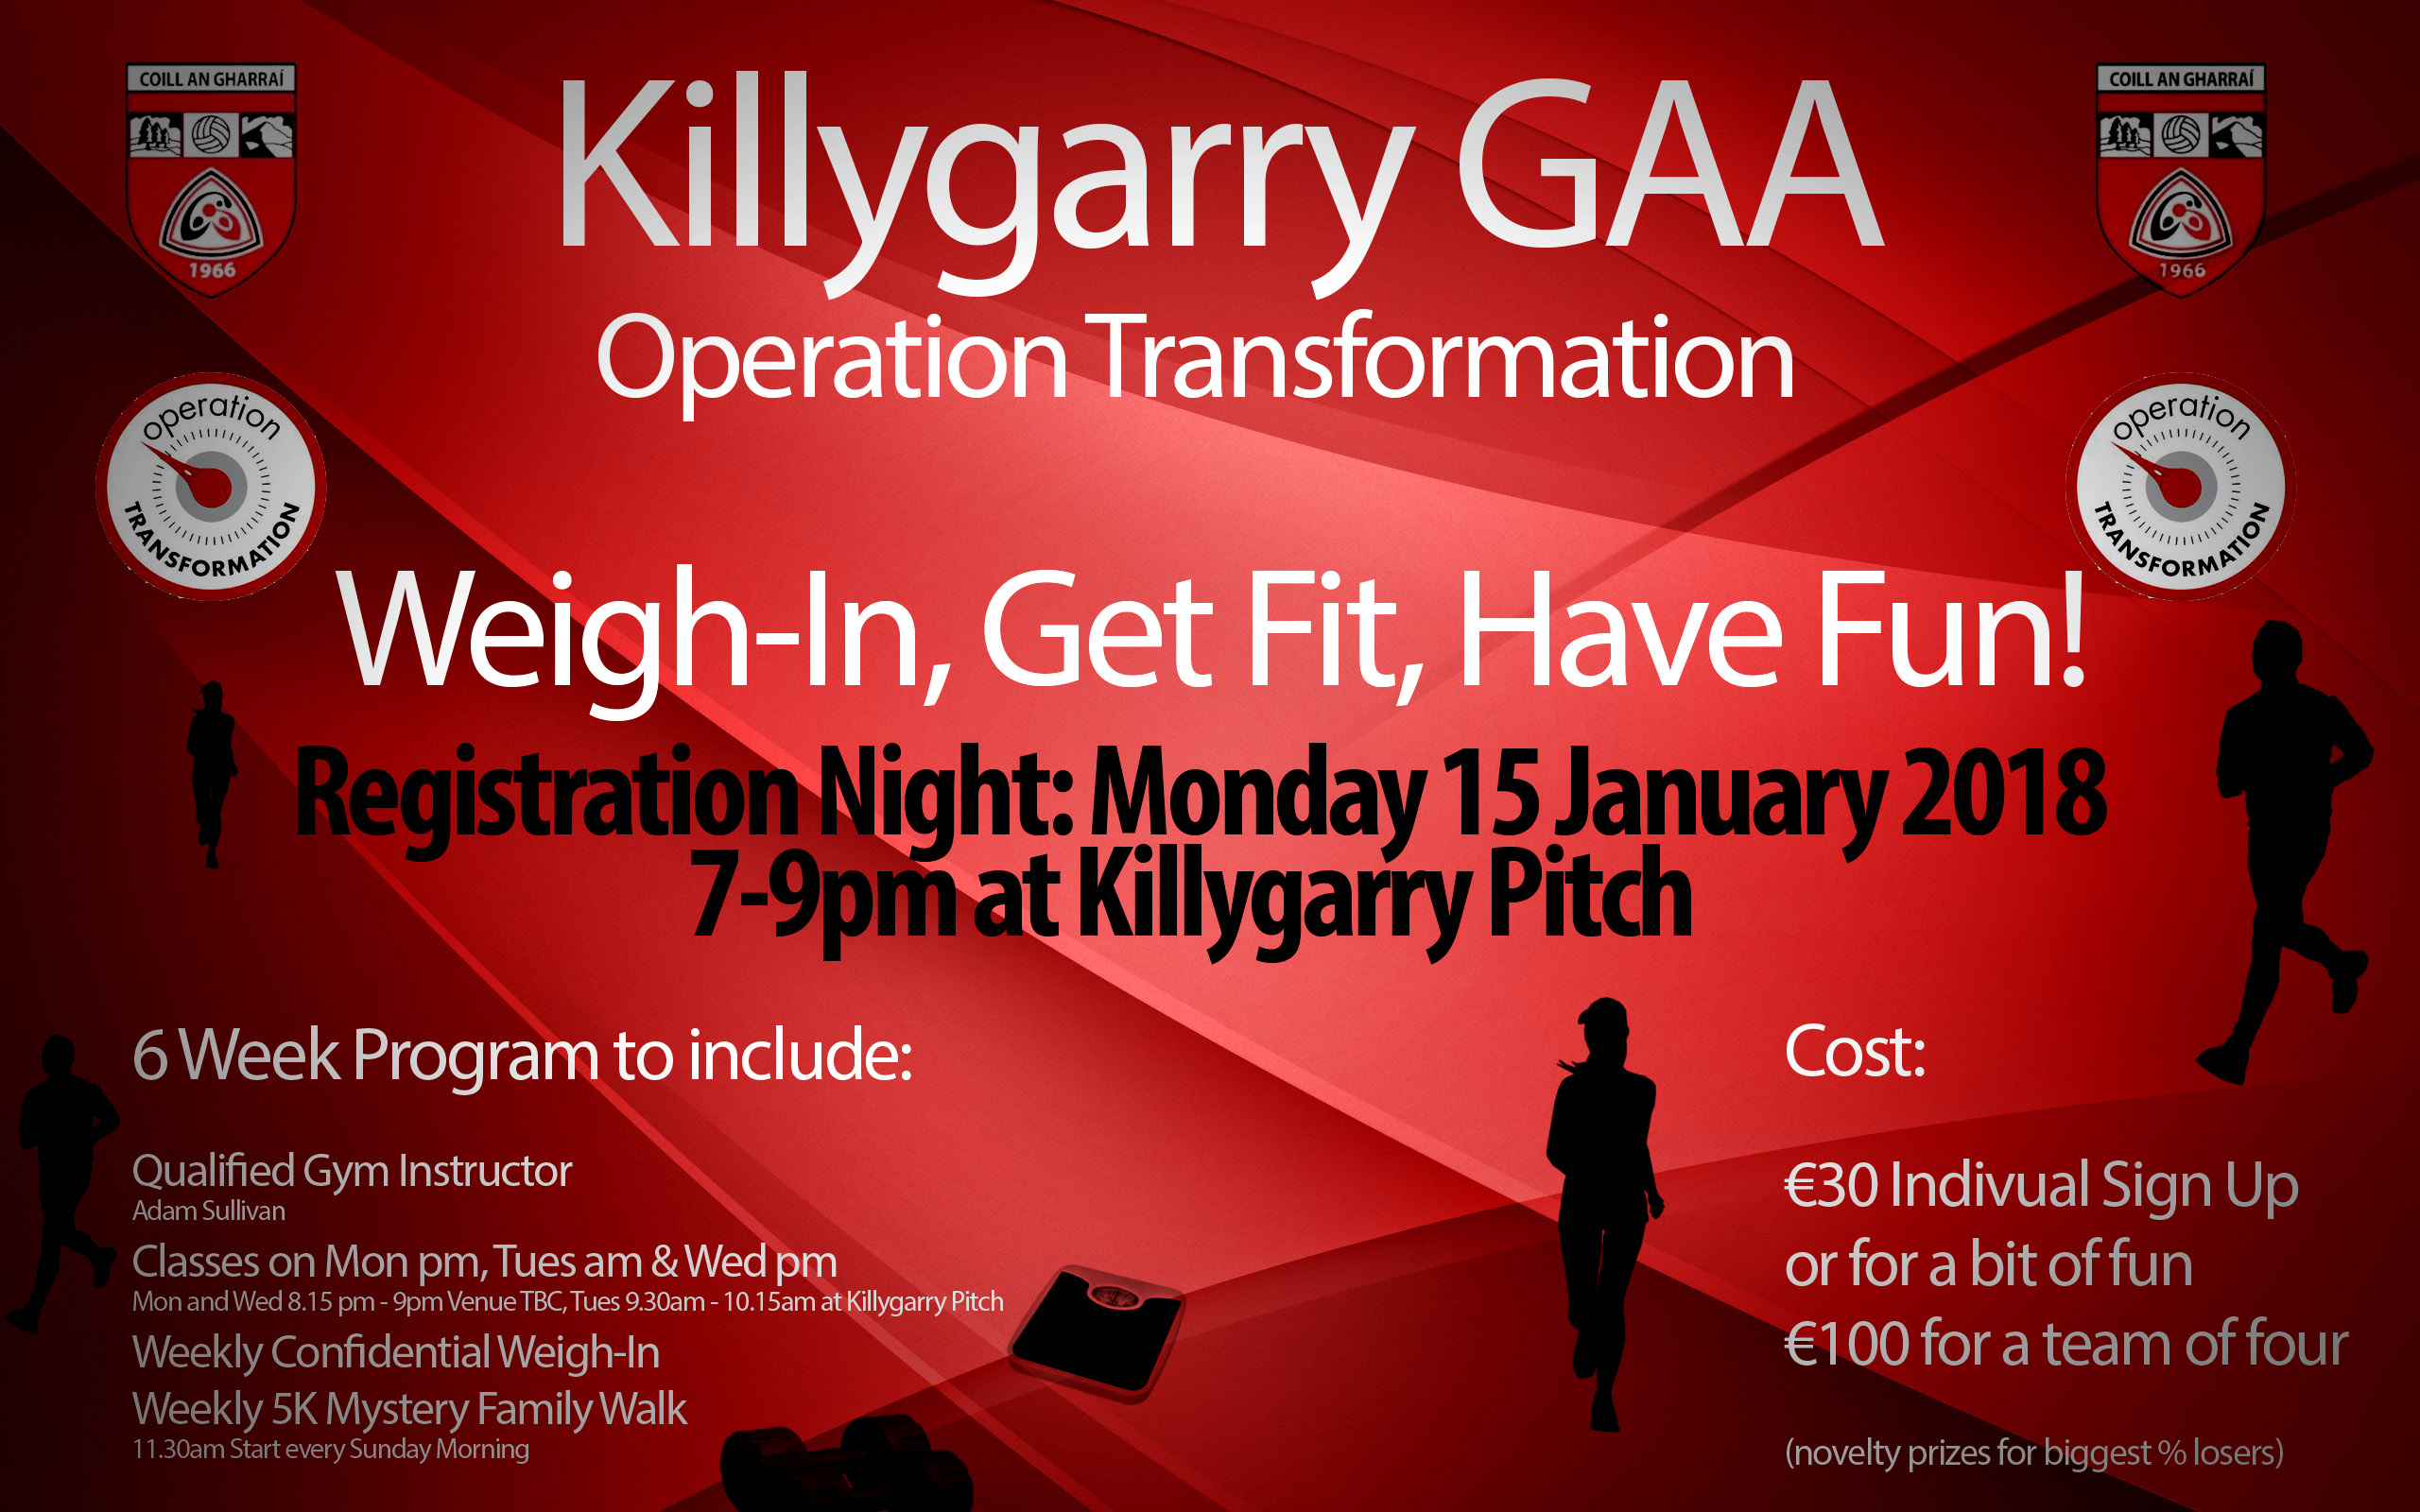 6 week Operation Transformation Killygarry GAA program